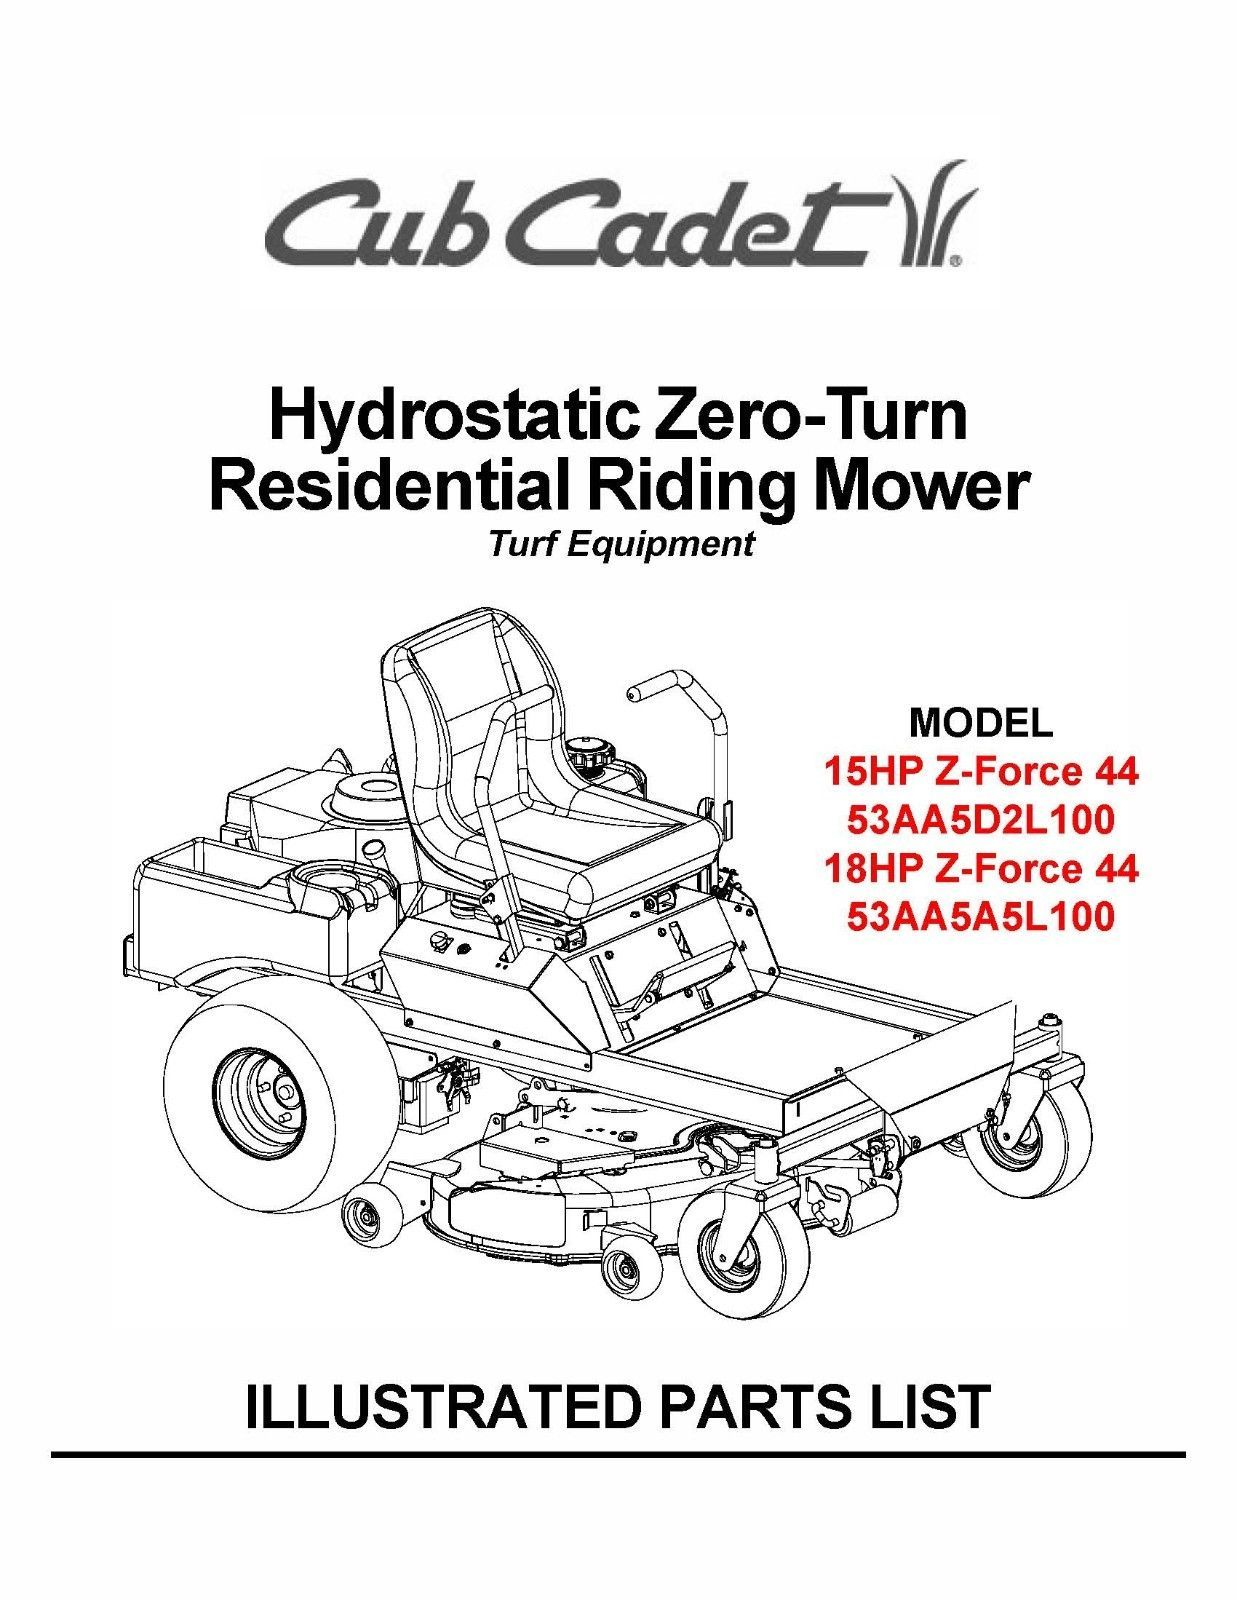 Cub Cadet Hydrostatic Zero-Turn Riding Mower Parts Manual Model #.ZFORCE 44